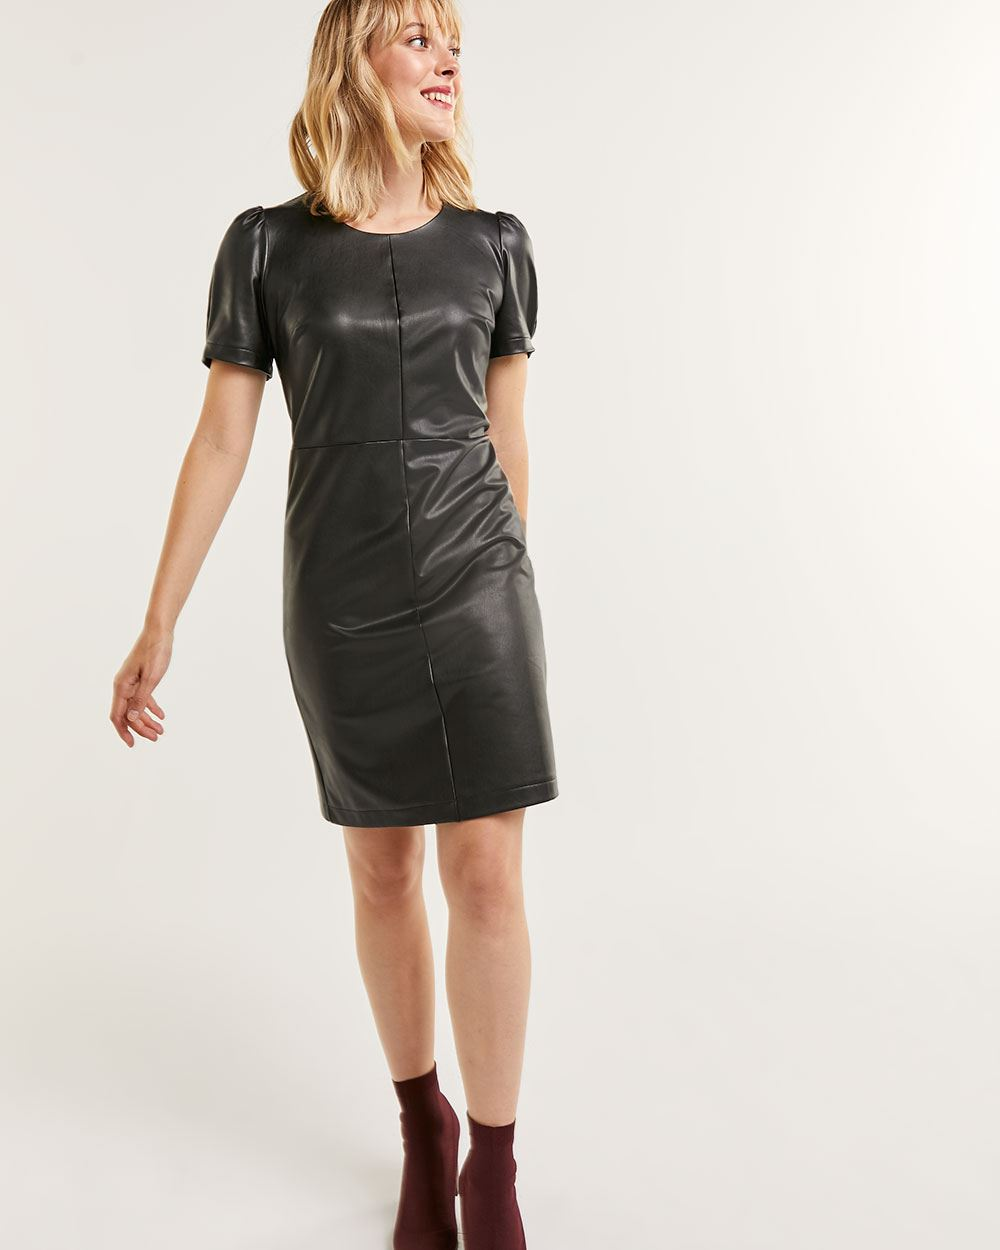 Short Puff Sleeve Faux Leather Bodycon Dress